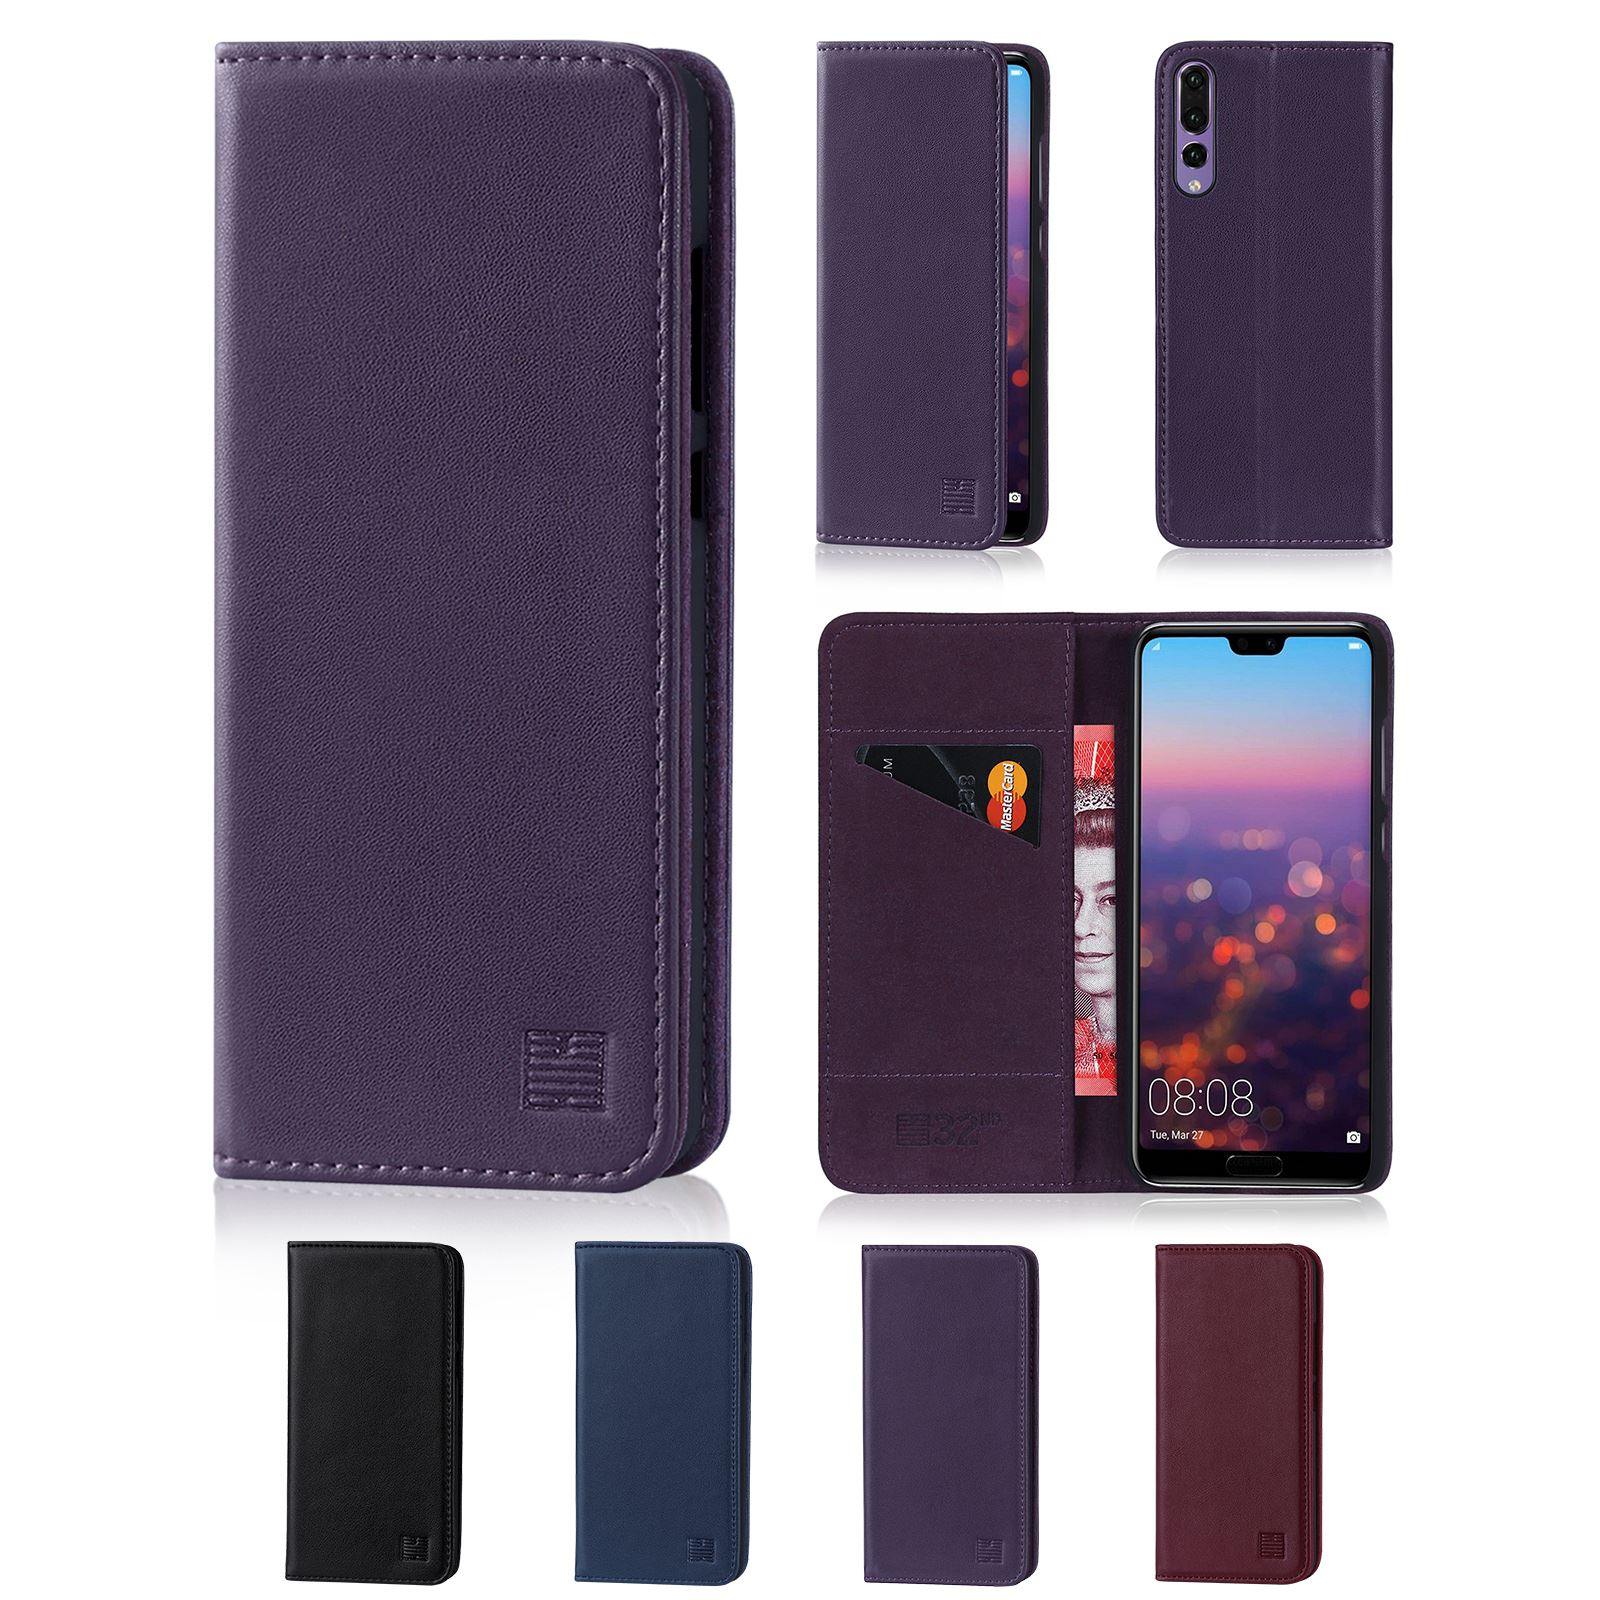 Classic Book Cover Phone Cases : Nd classic series real leather book wallet case cover